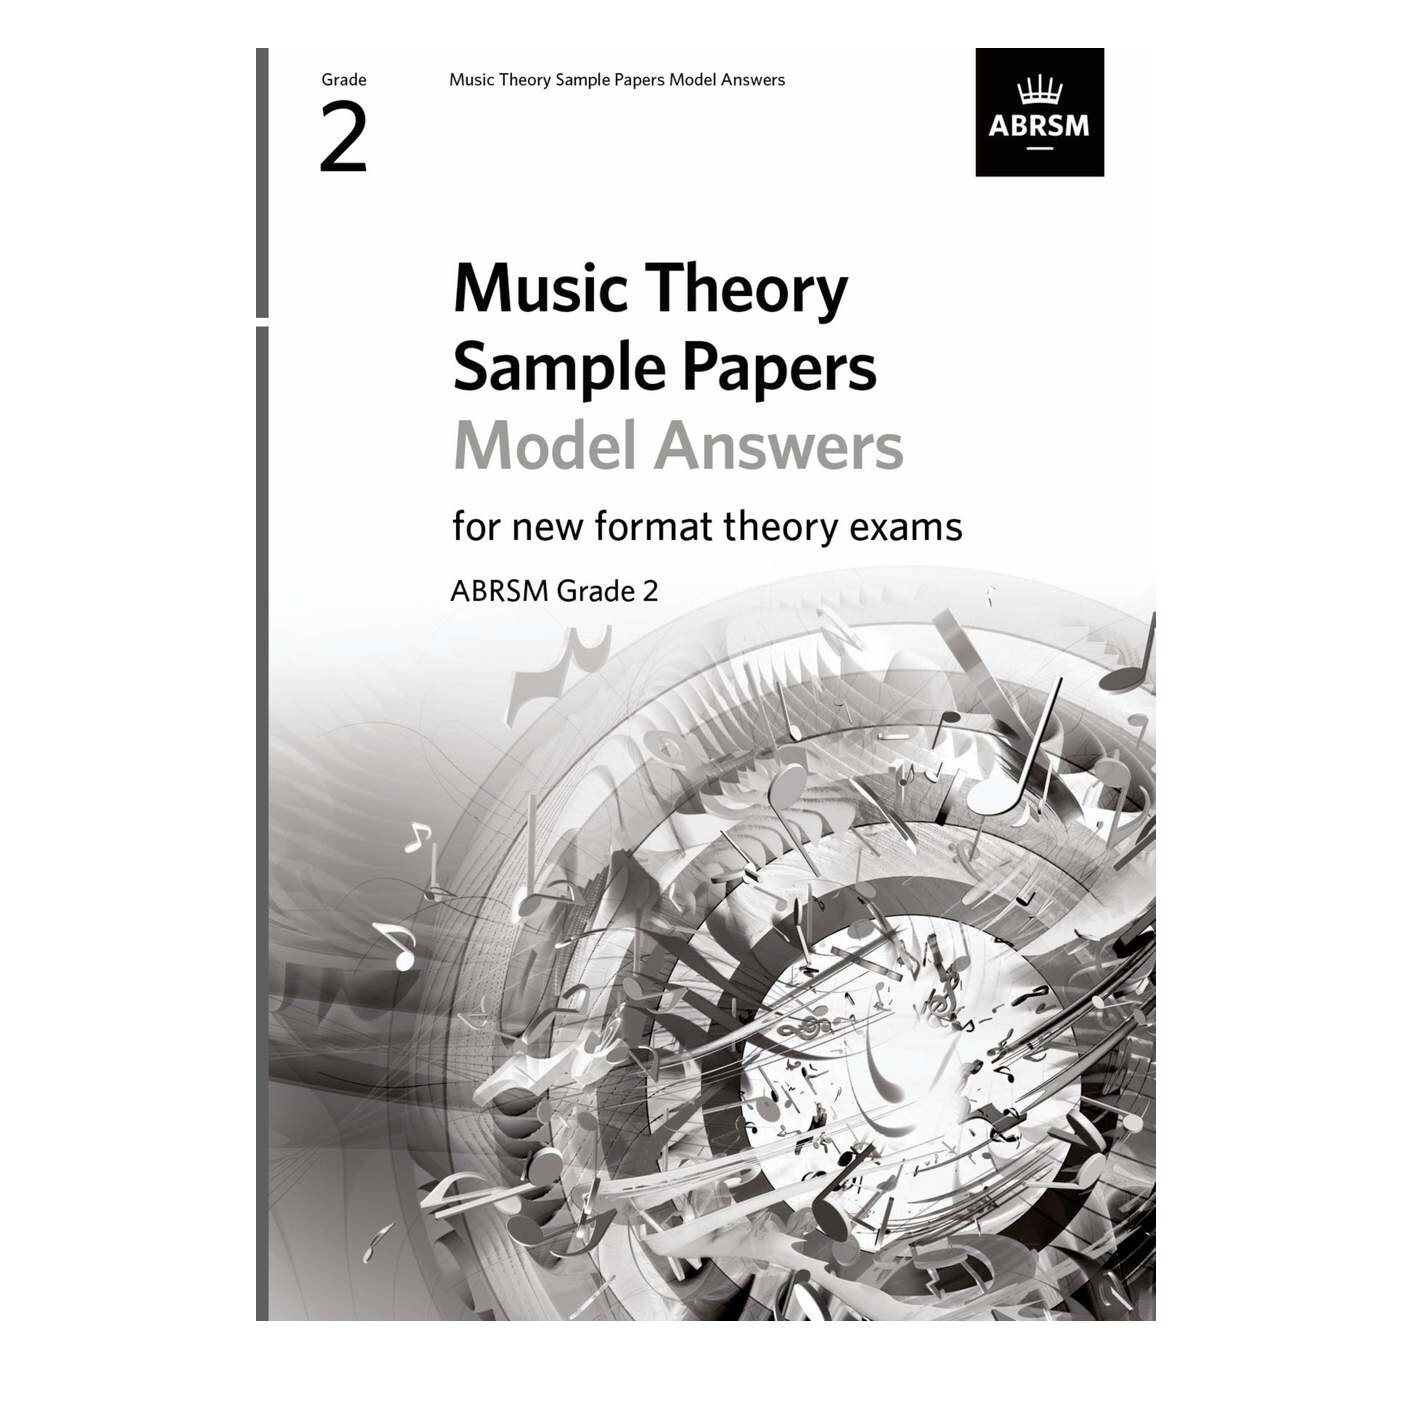 ABRSM Music Theory Sample Papers Model Answers (new 2020 format) - Grade 2